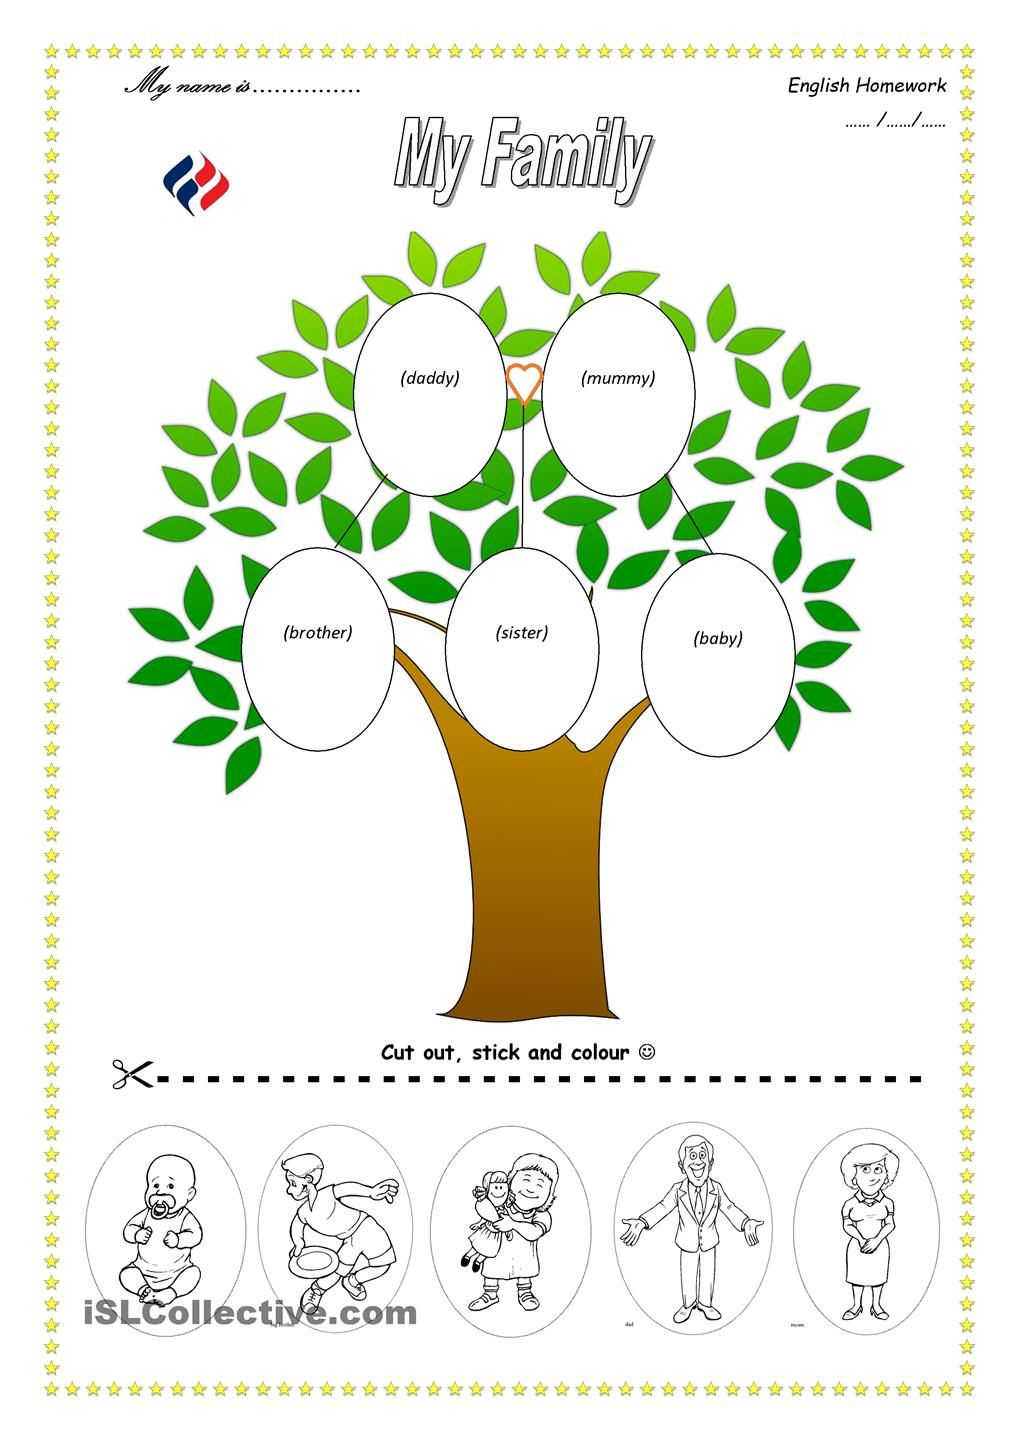 Worksheets Family Tree Worksheet For Kids family tree sosyal pinterest trees pre school and kids worksheetworksheets for kindergartenprintable